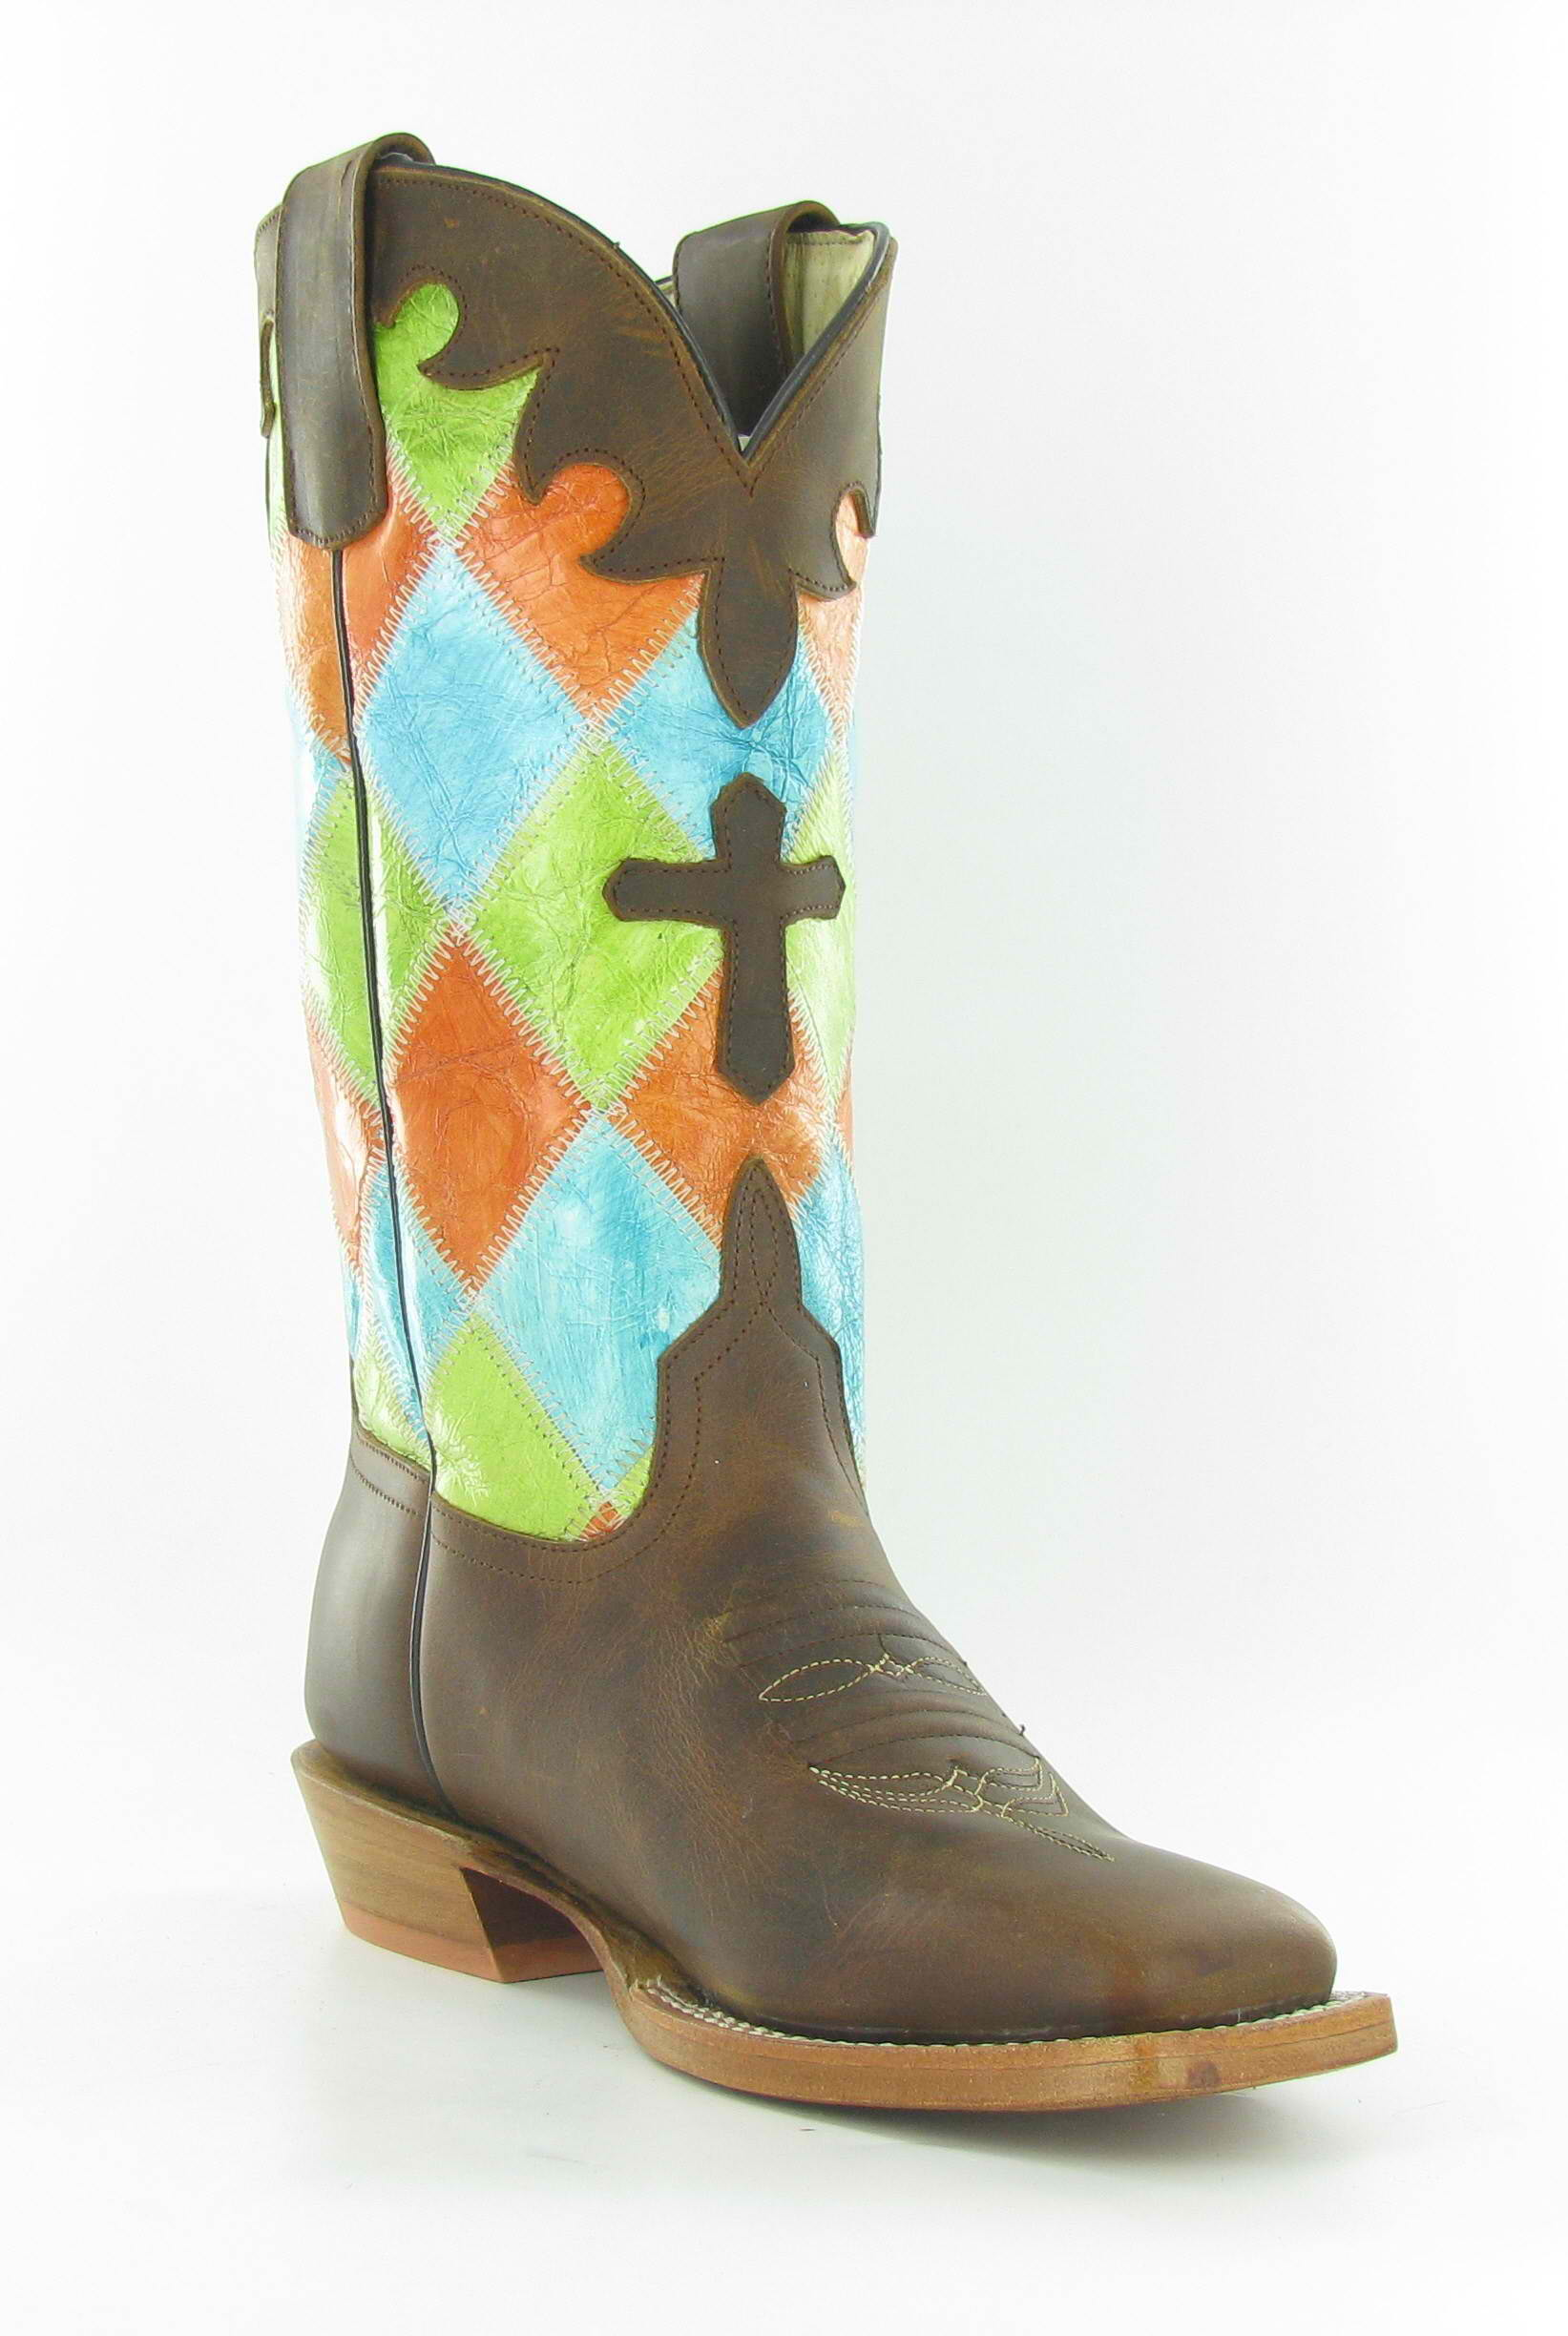 Cute Cowboy Boots For Girls